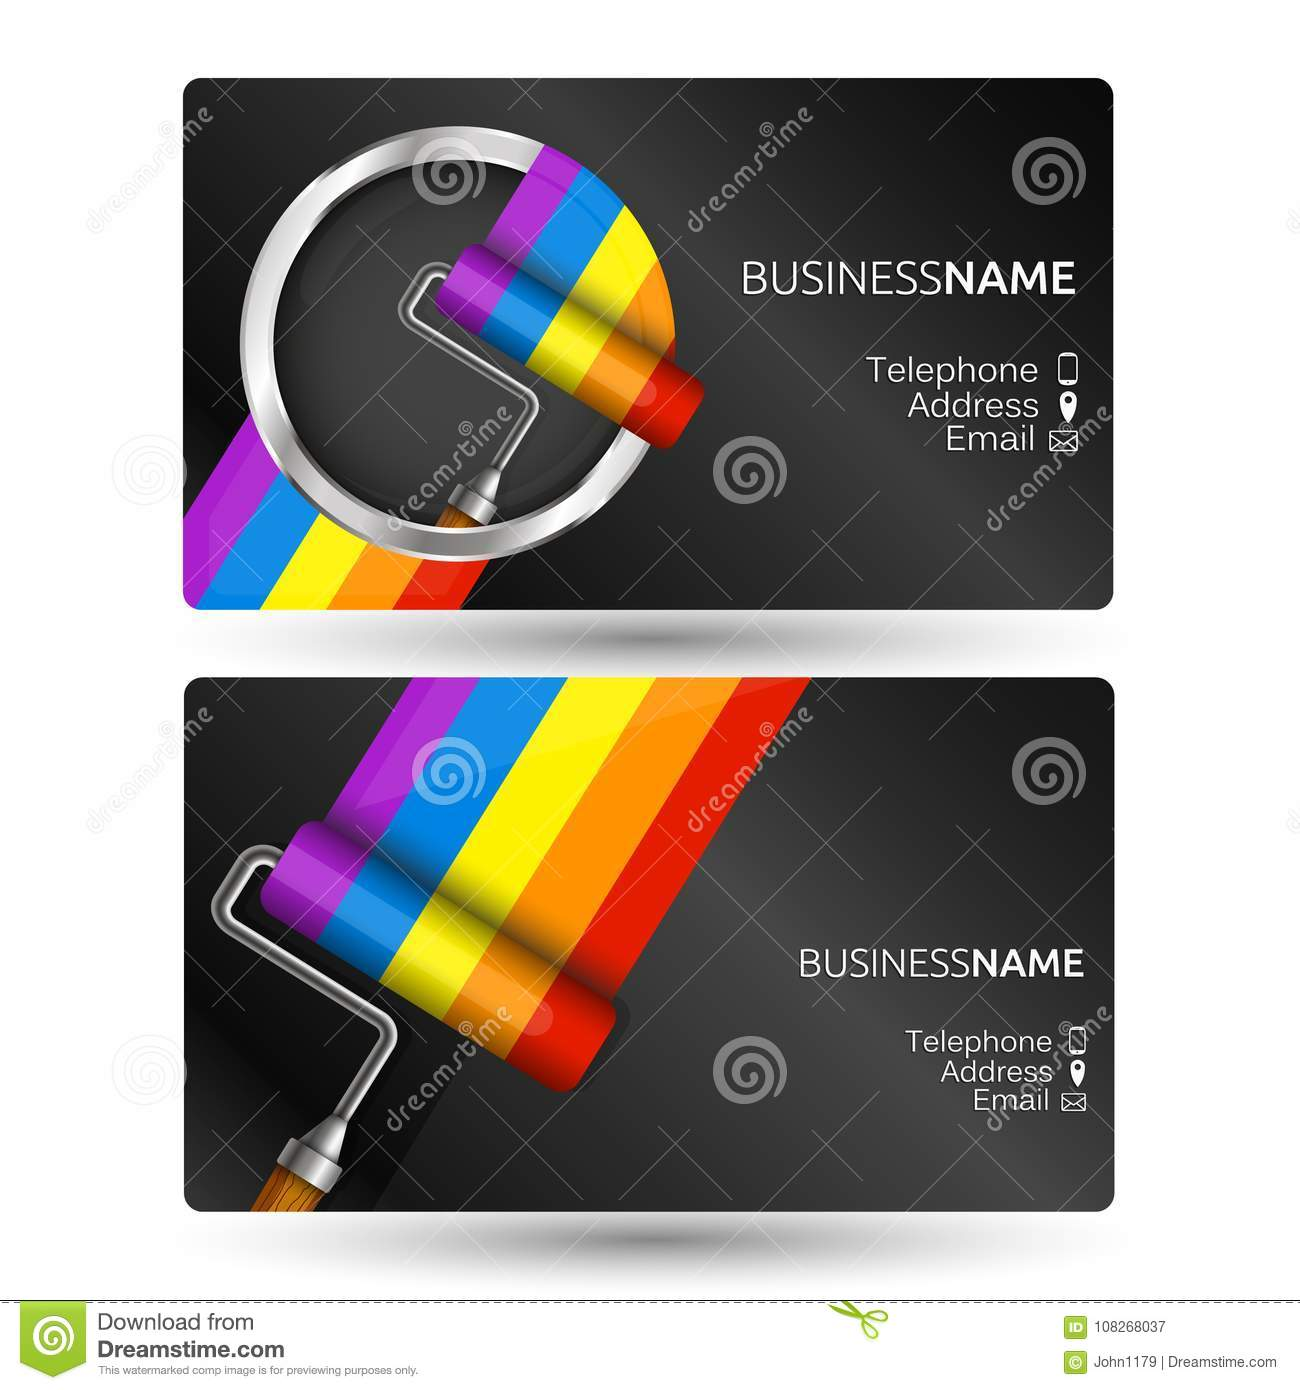 Painting business card concept stock vector illustration of print download painting business card concept stock vector illustration of print painter 108268037 colourmoves